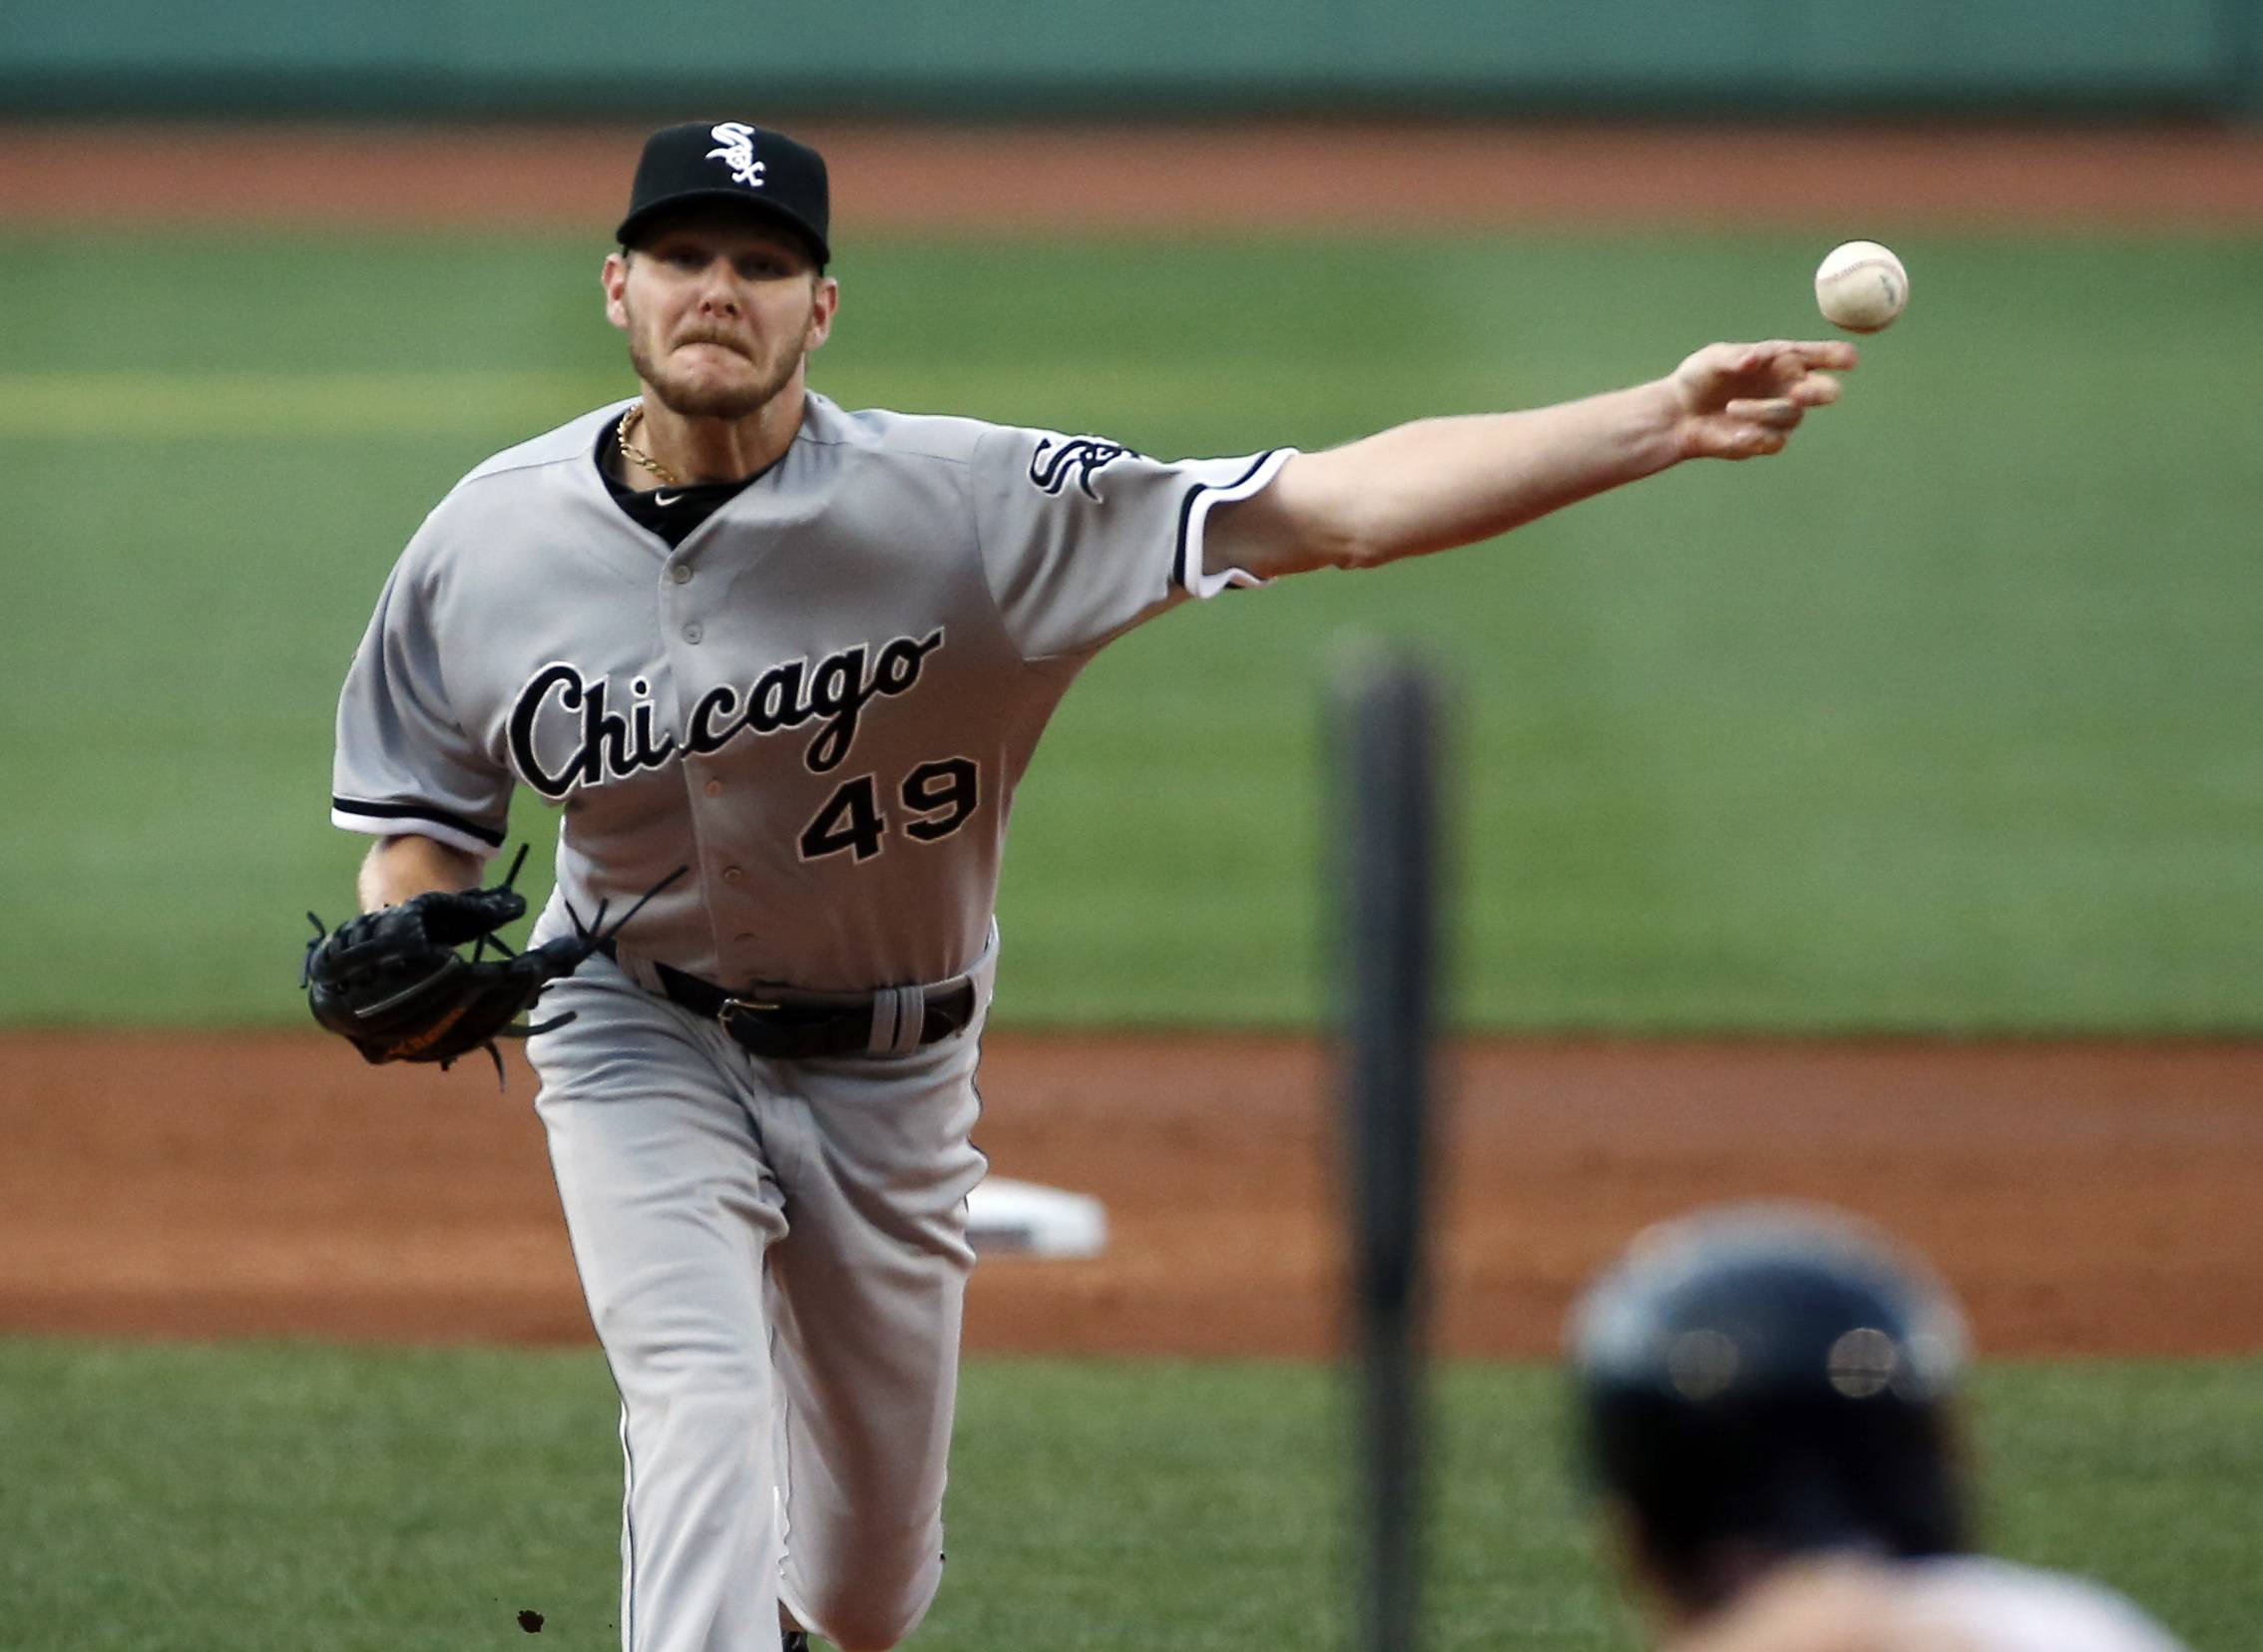 Chicago White Sox starting pitcher Chris Sale delivers to the Boston Red Sox in the first inning of a baseball game at Fenway Park in Boston, Wednesday, July 9, 2014.